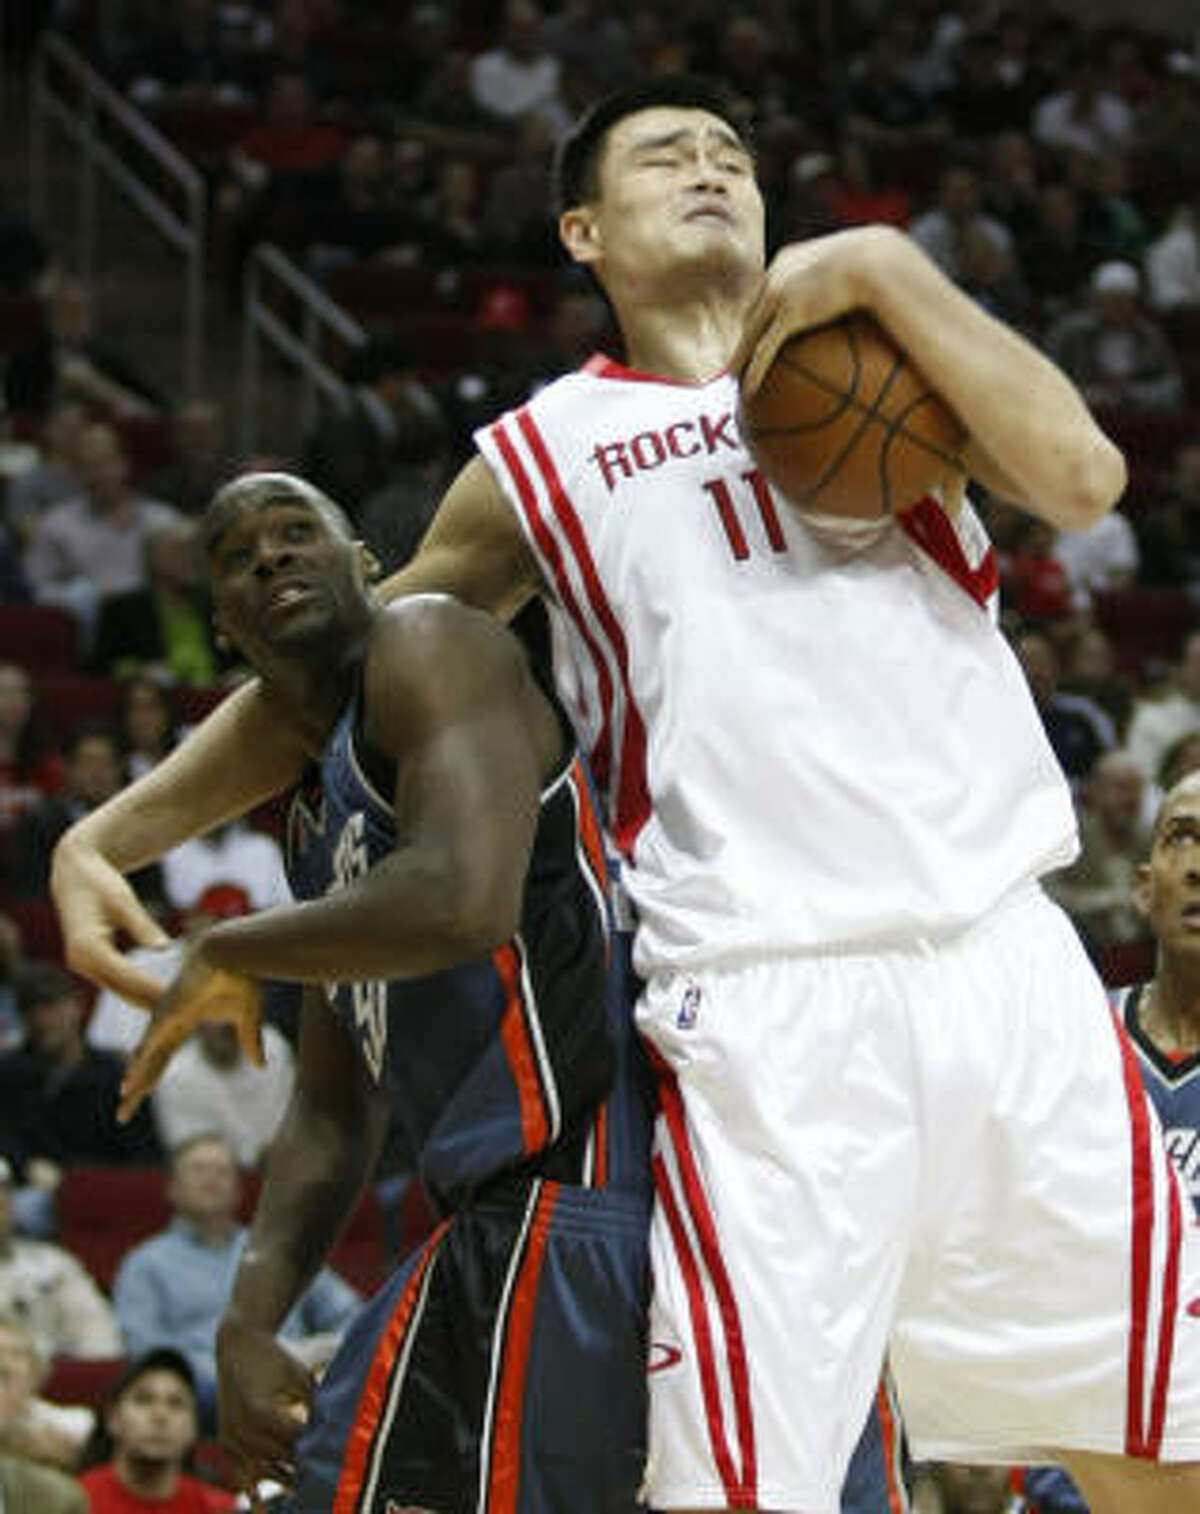 Yao Ming (11) grabs a rebound over Bobcats center Emeka Okafor in the first half. Yao scored 19 points to go along with seven rebounds.